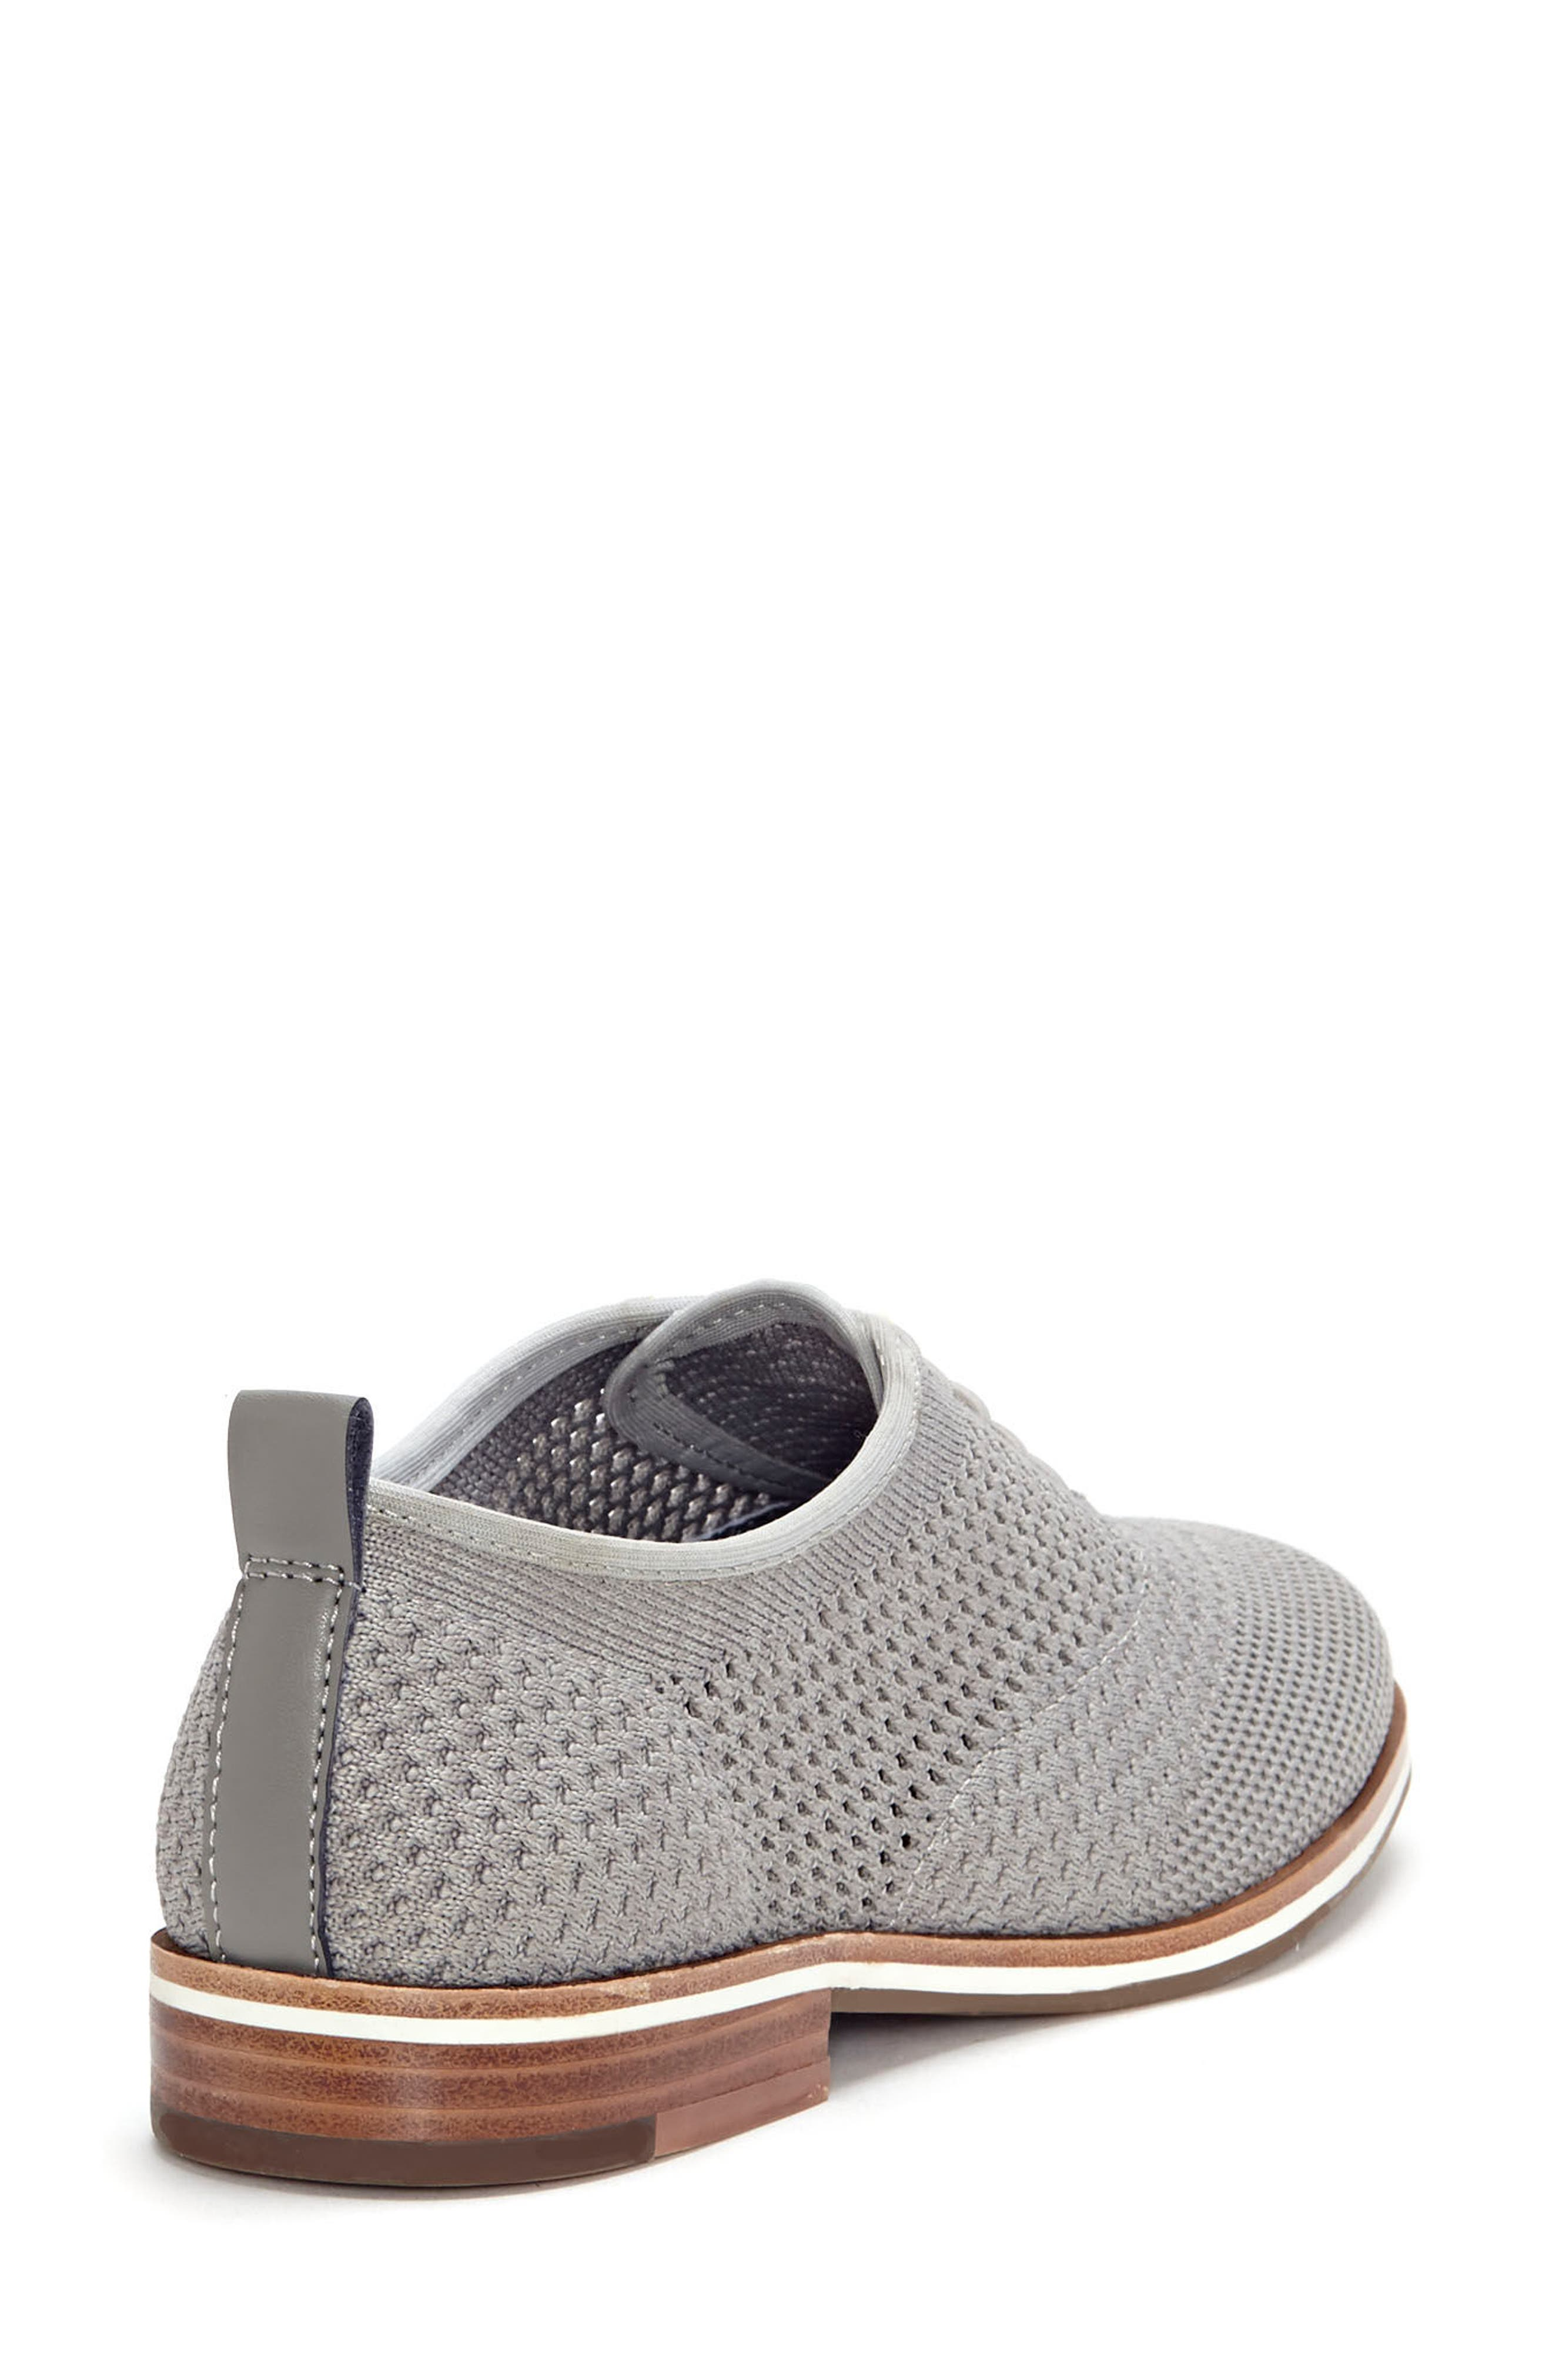 Lucerne Knit Oxford,                             Alternate thumbnail 8, color,                             HEATHER GREY TEXTILE FABRIC